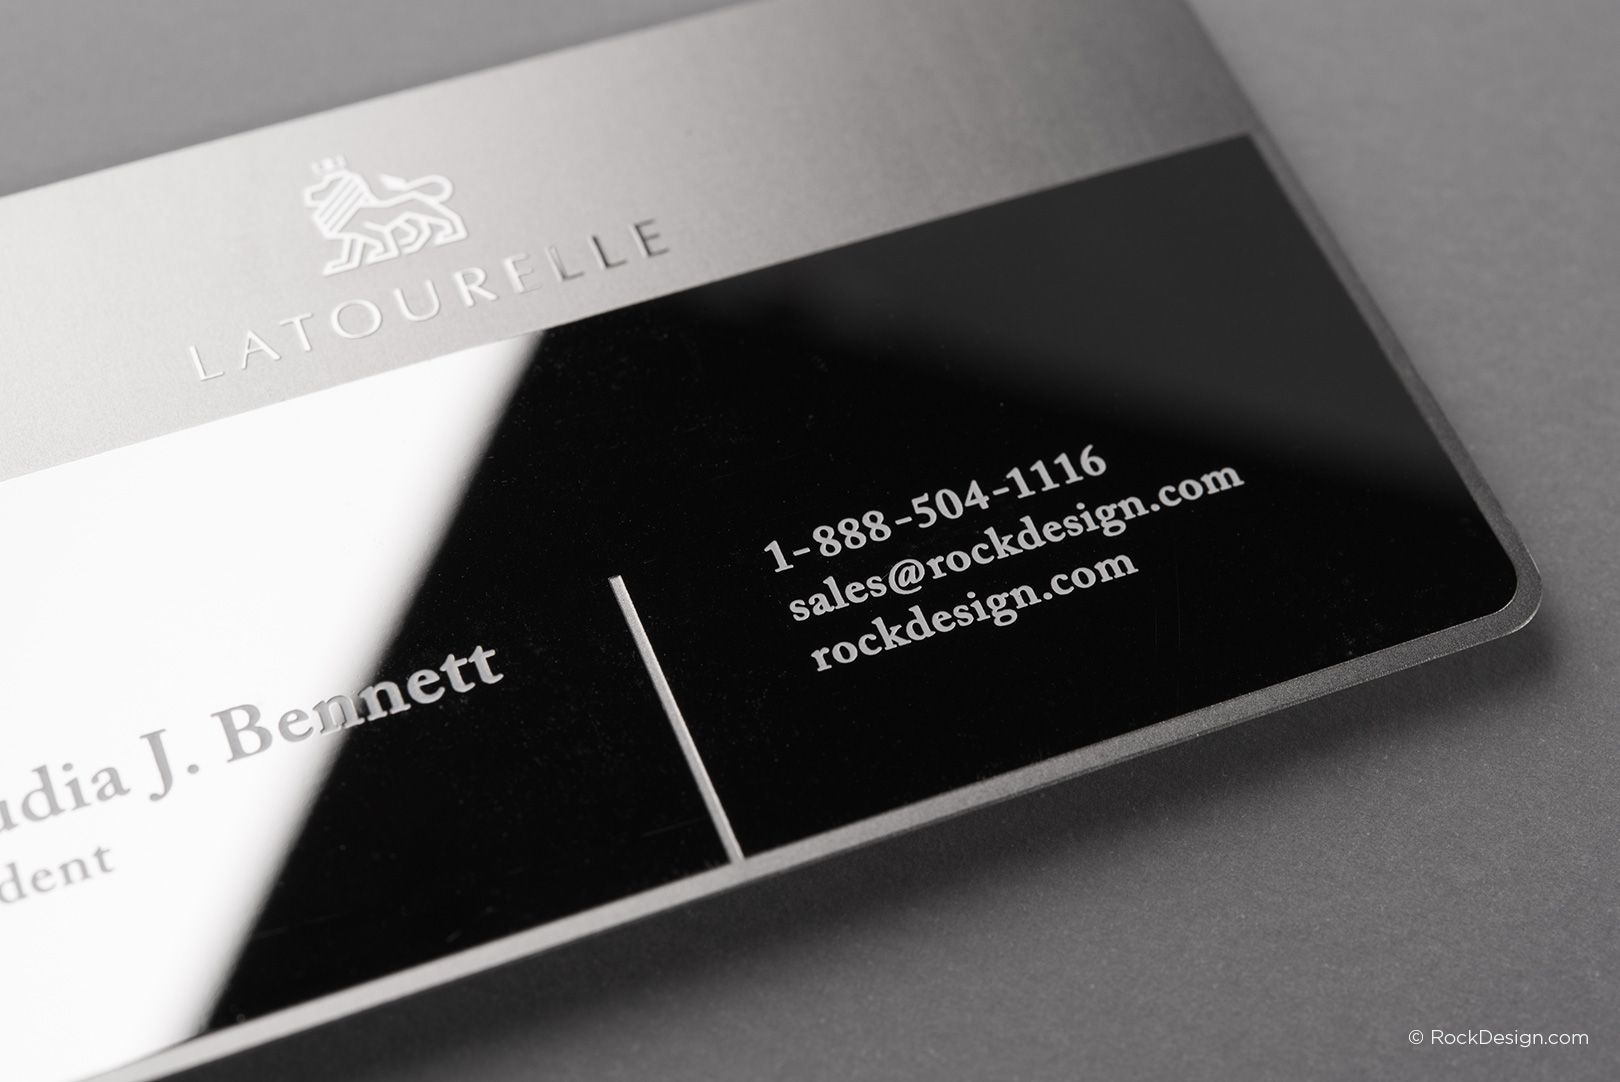 Sophisticated modern stainless steel business card with etching and sophisticated modern stainless steel business card with etching and mirror finish latourelle rockdesign luxury colourmoves